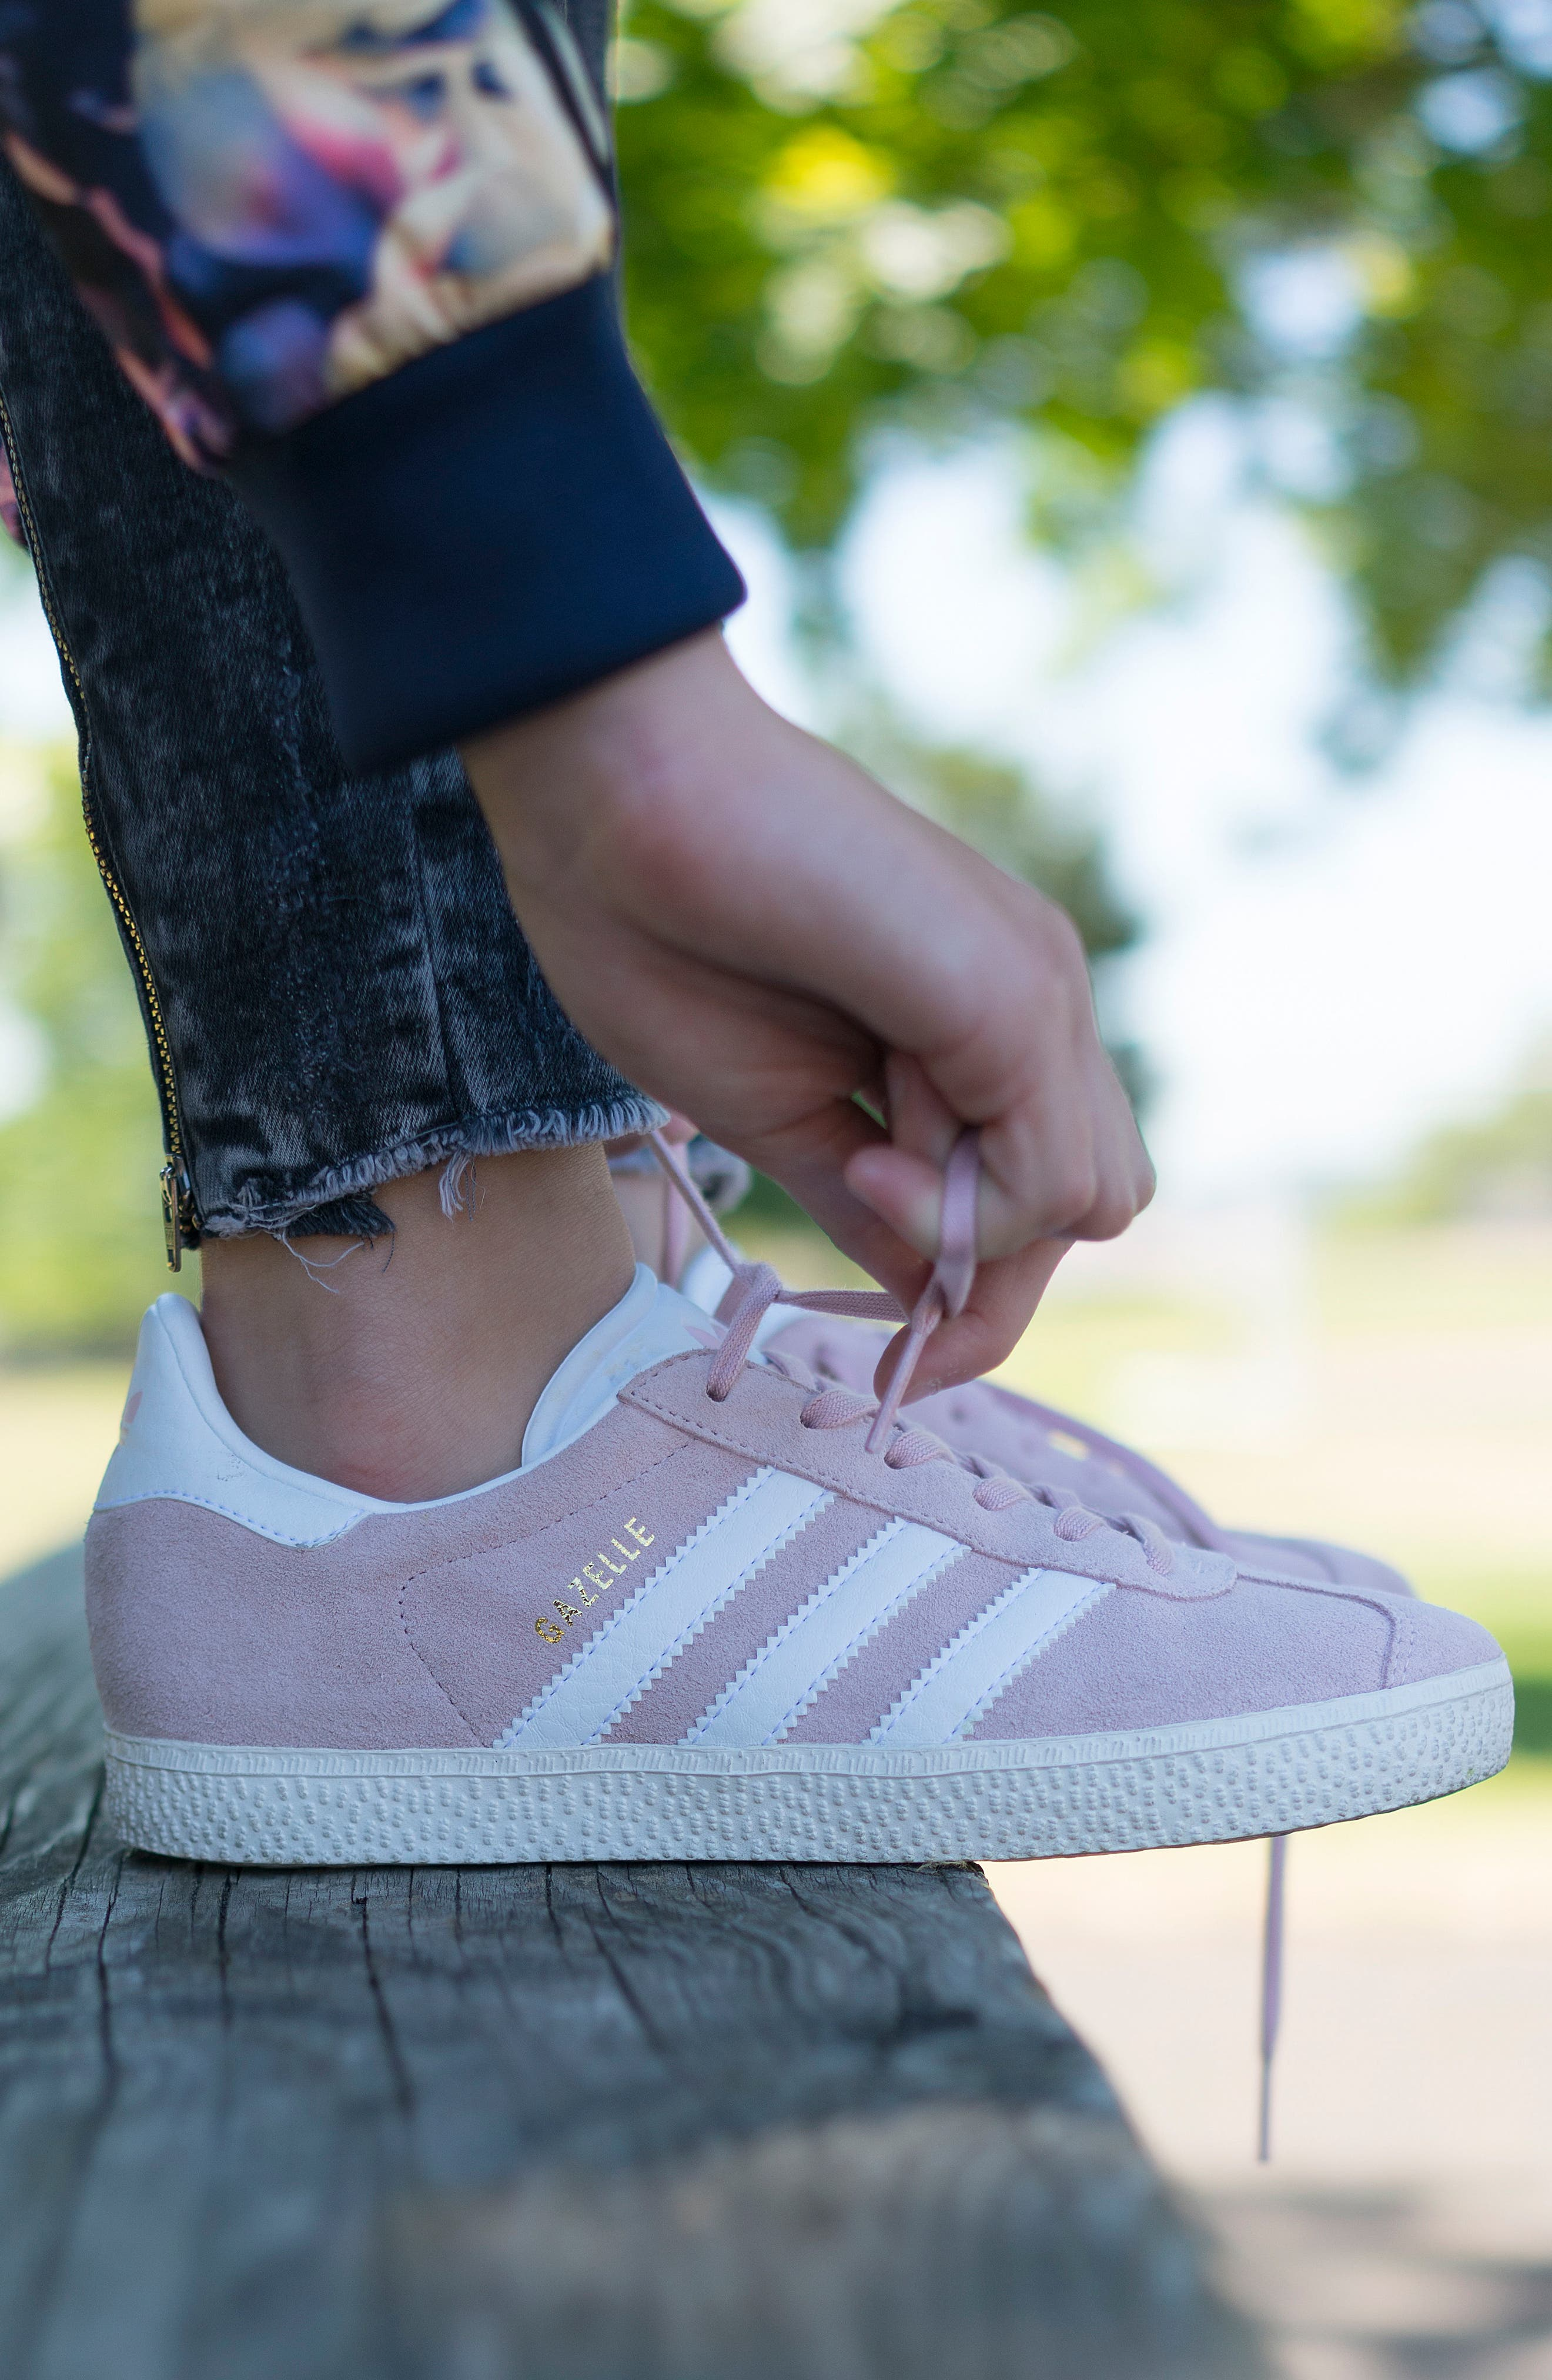 Gazelle Sneaker,                             Alternate thumbnail 8, color,                             682